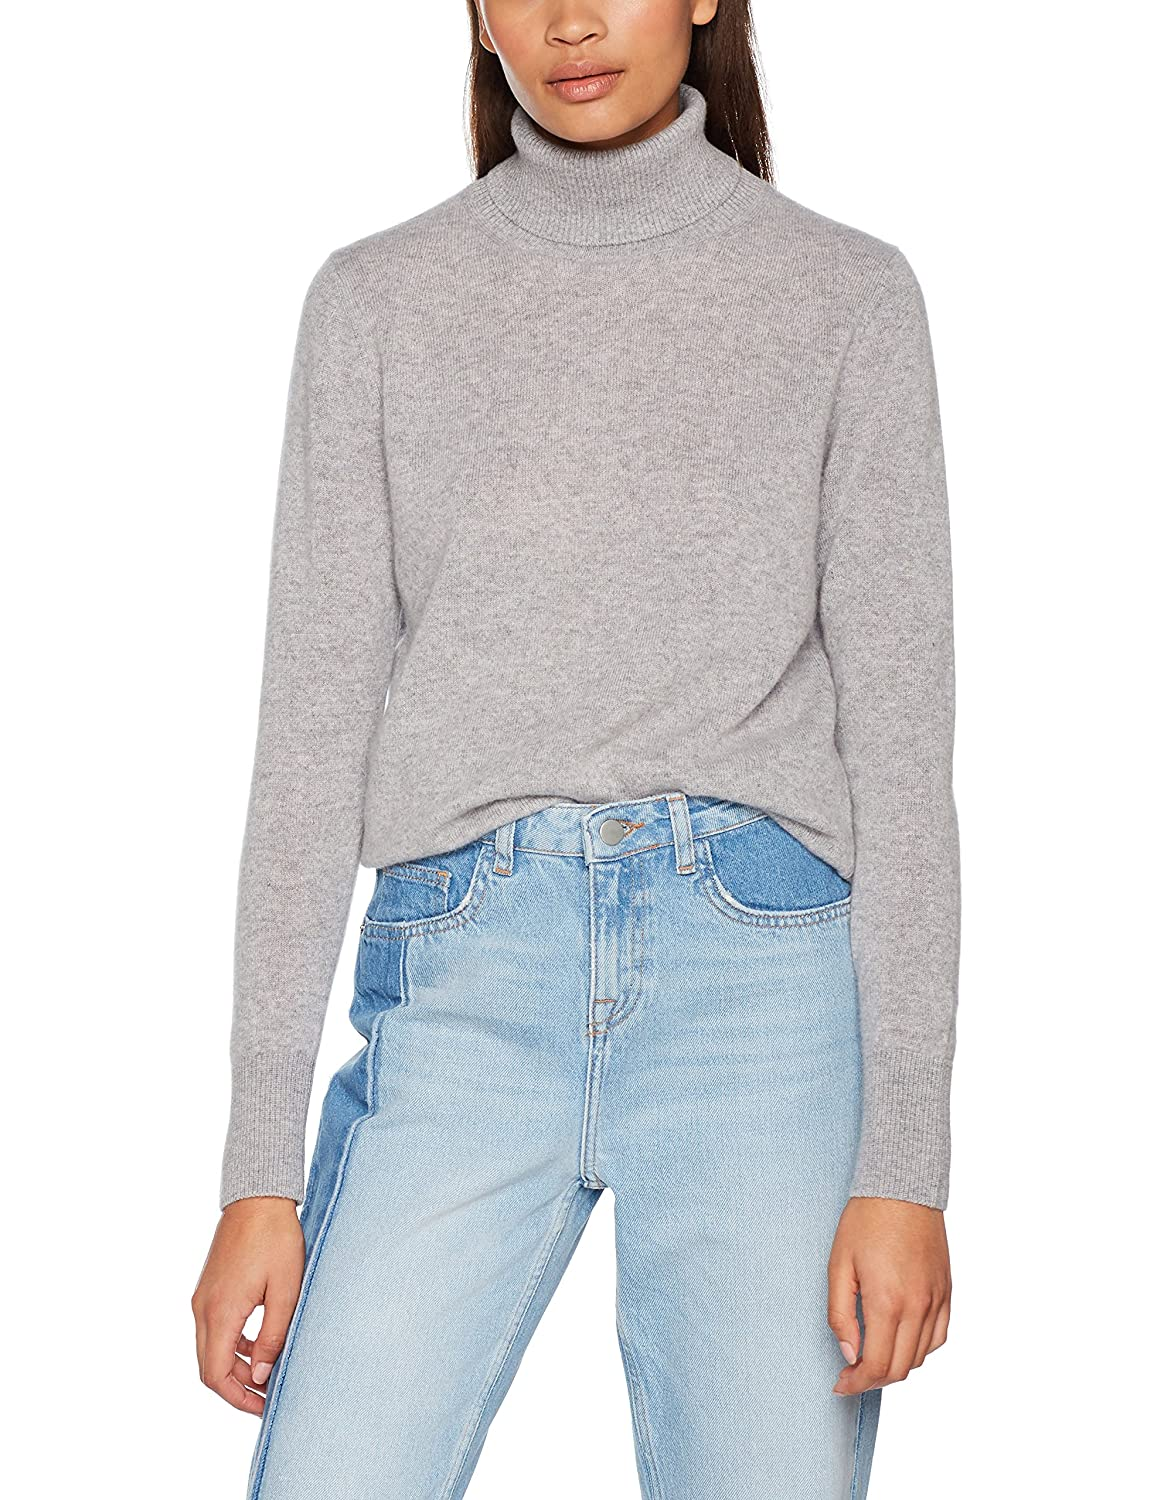 TALLA S. United Colors of Benetton Turtle Neck Sweater suéter para Mujer